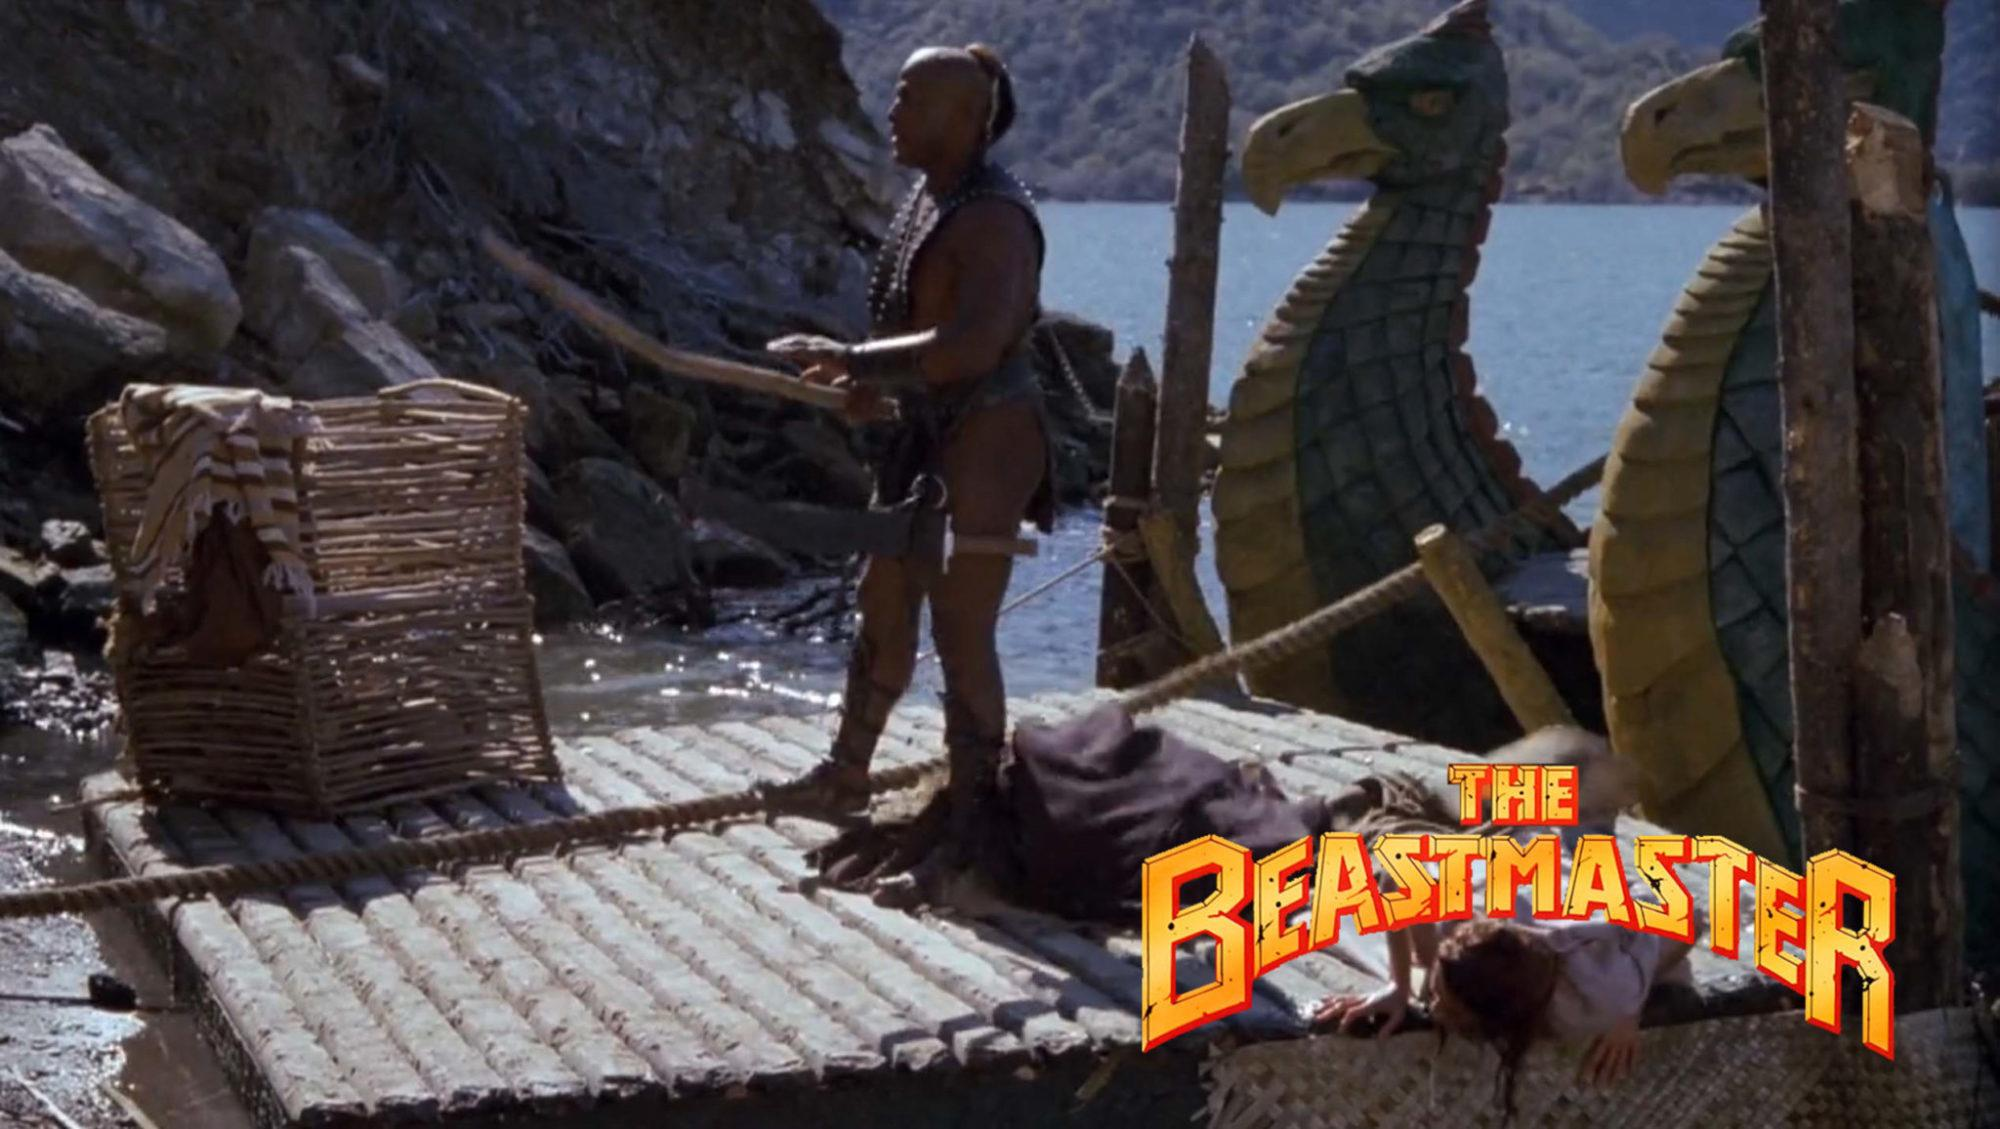 John Amos in The Beastmaster (1982)